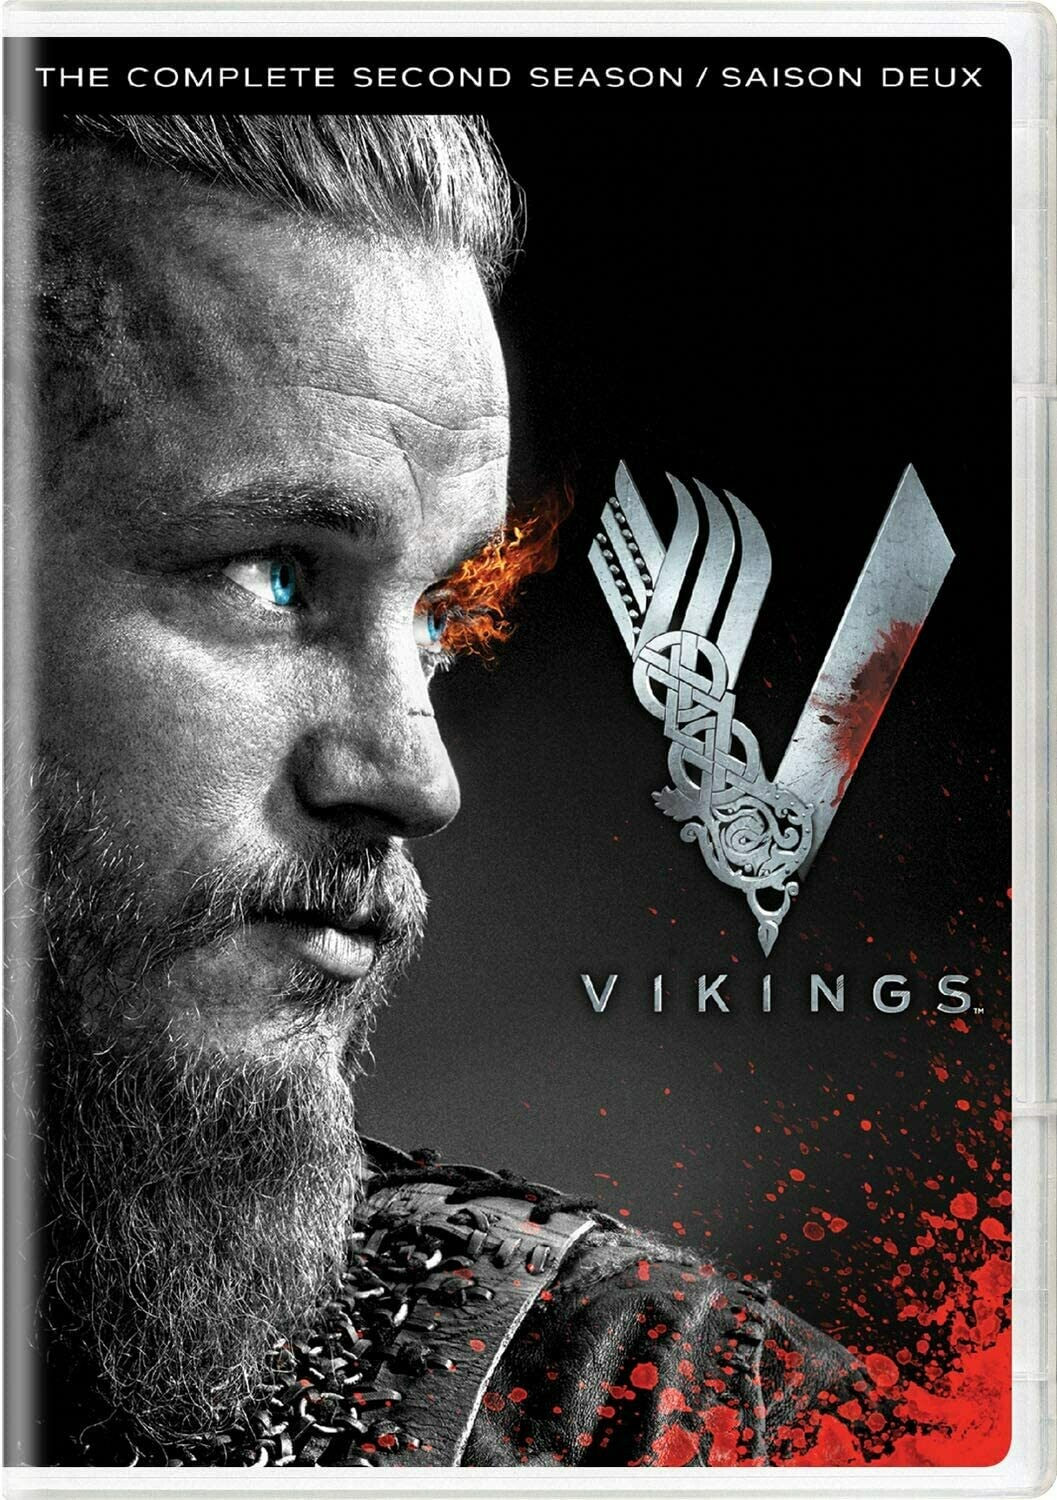 Vikings Season Two (7 day rental)